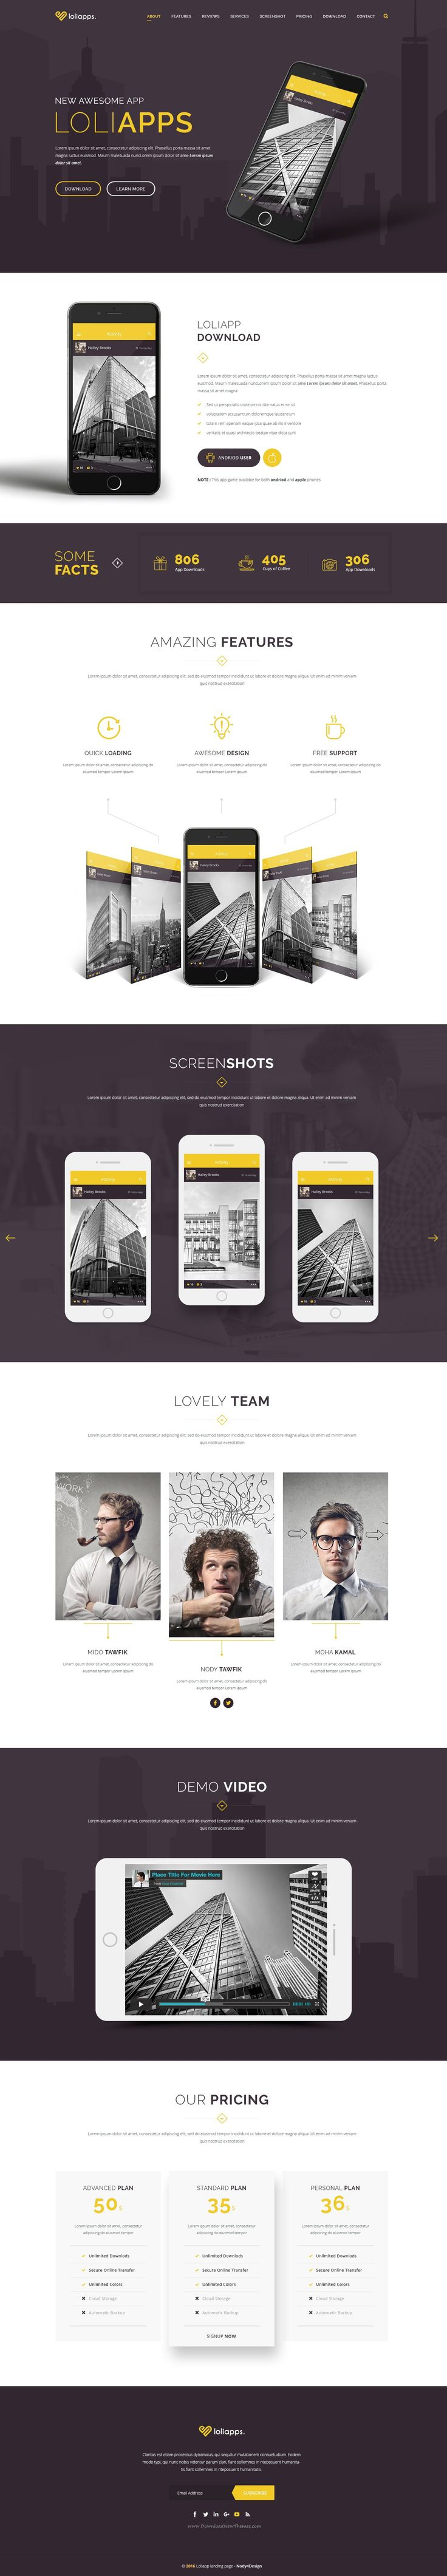 Loliapps is App Landing Page Template, this design has an extremely well-layered #PSD where you will be able to find everything you need in an instance. #landingpage #template Download Now➝ http://themeforest.net/item/loliapps-landing-page-theme/15589193?ref=Datasata